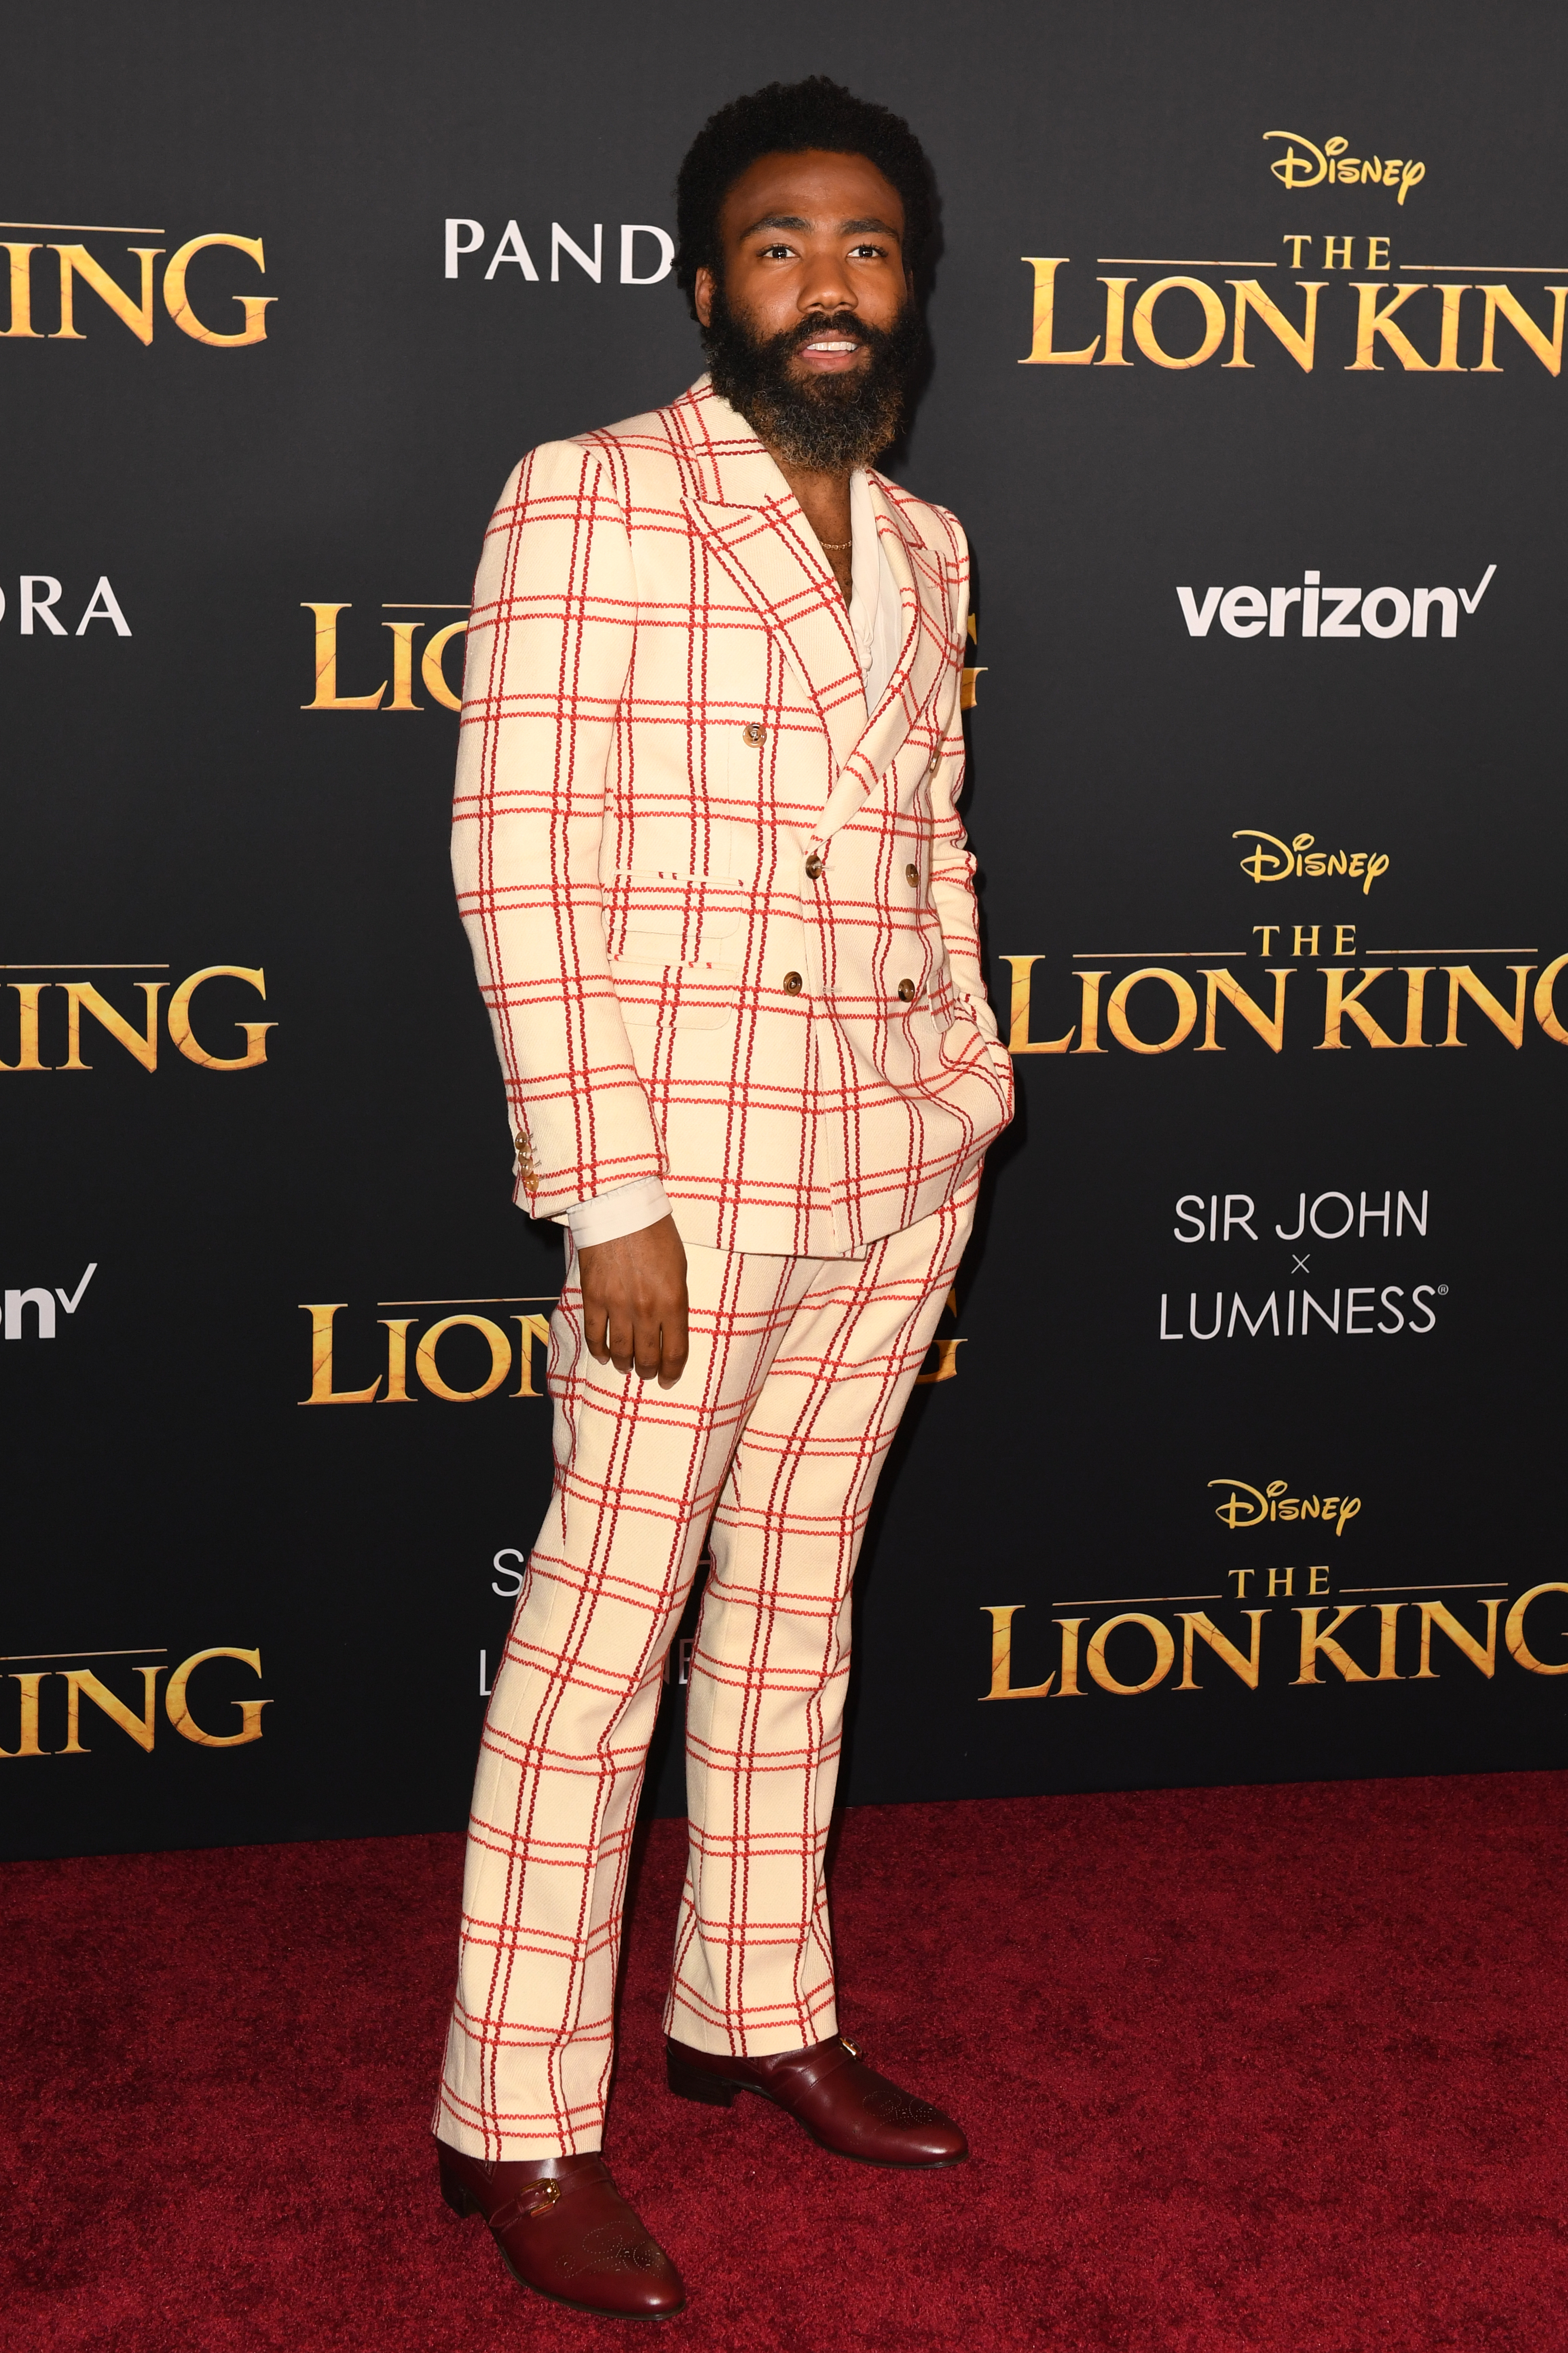 donald glover, stijl, looks, pakken, style game